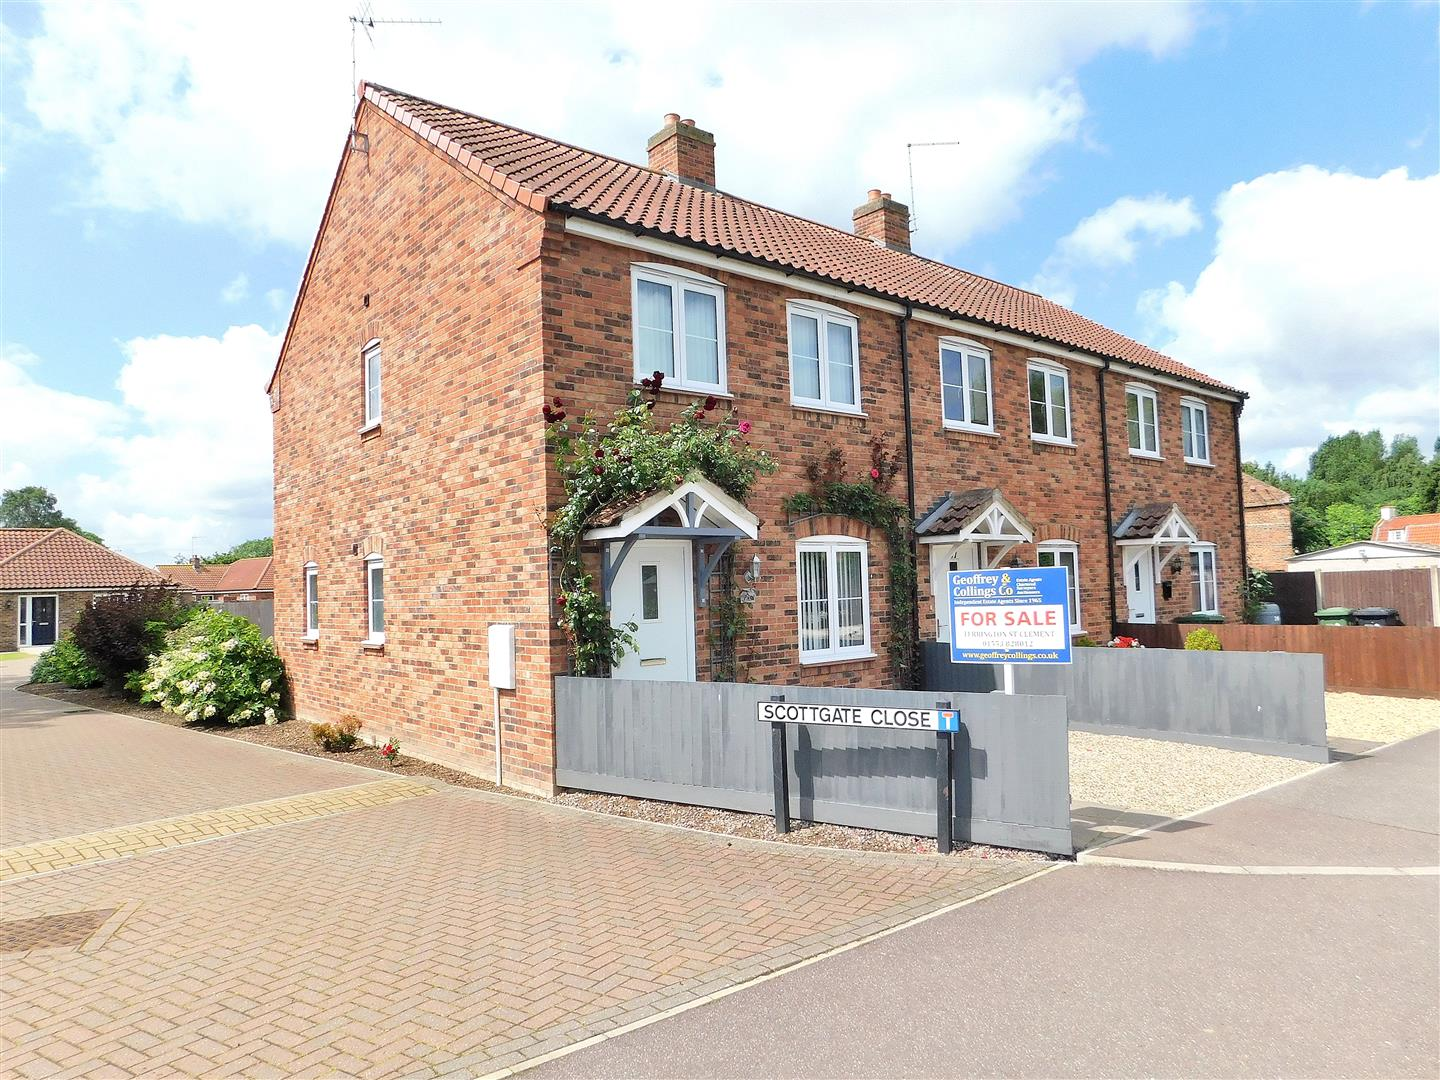 3 bed end of terrace house for sale in 85 Chapel Road, King's Lynn, PE34